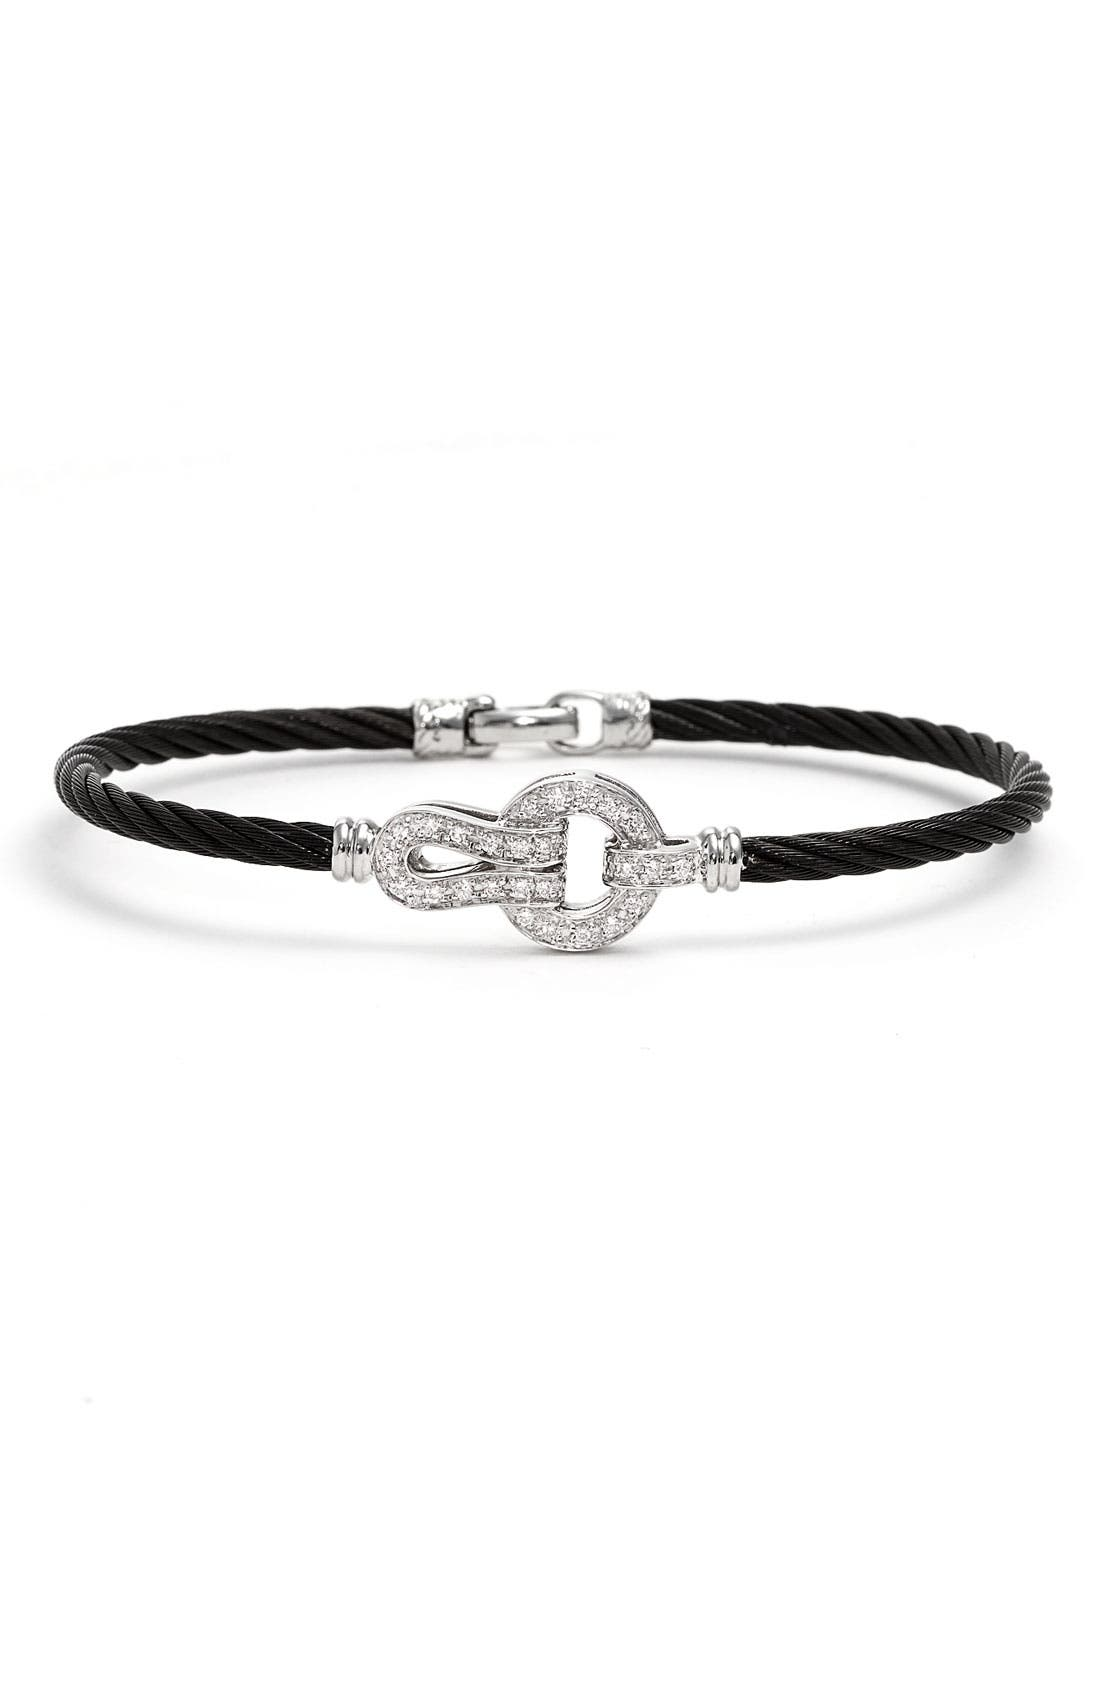 Alternate Image 1 Selected - ALOR® Circle Knot Diamond Bangle